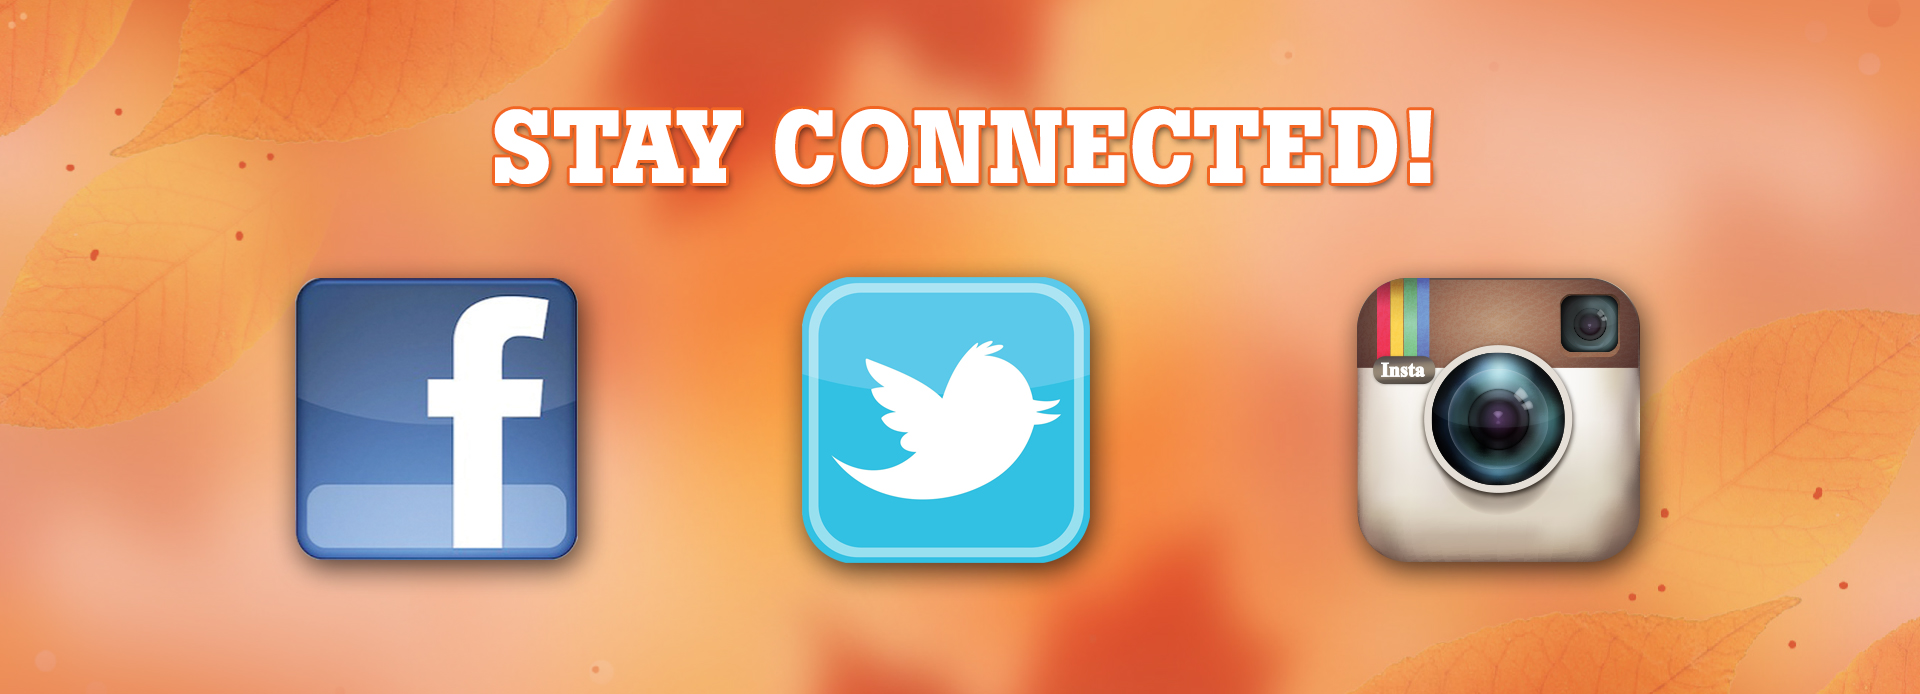 stayconnected-banner